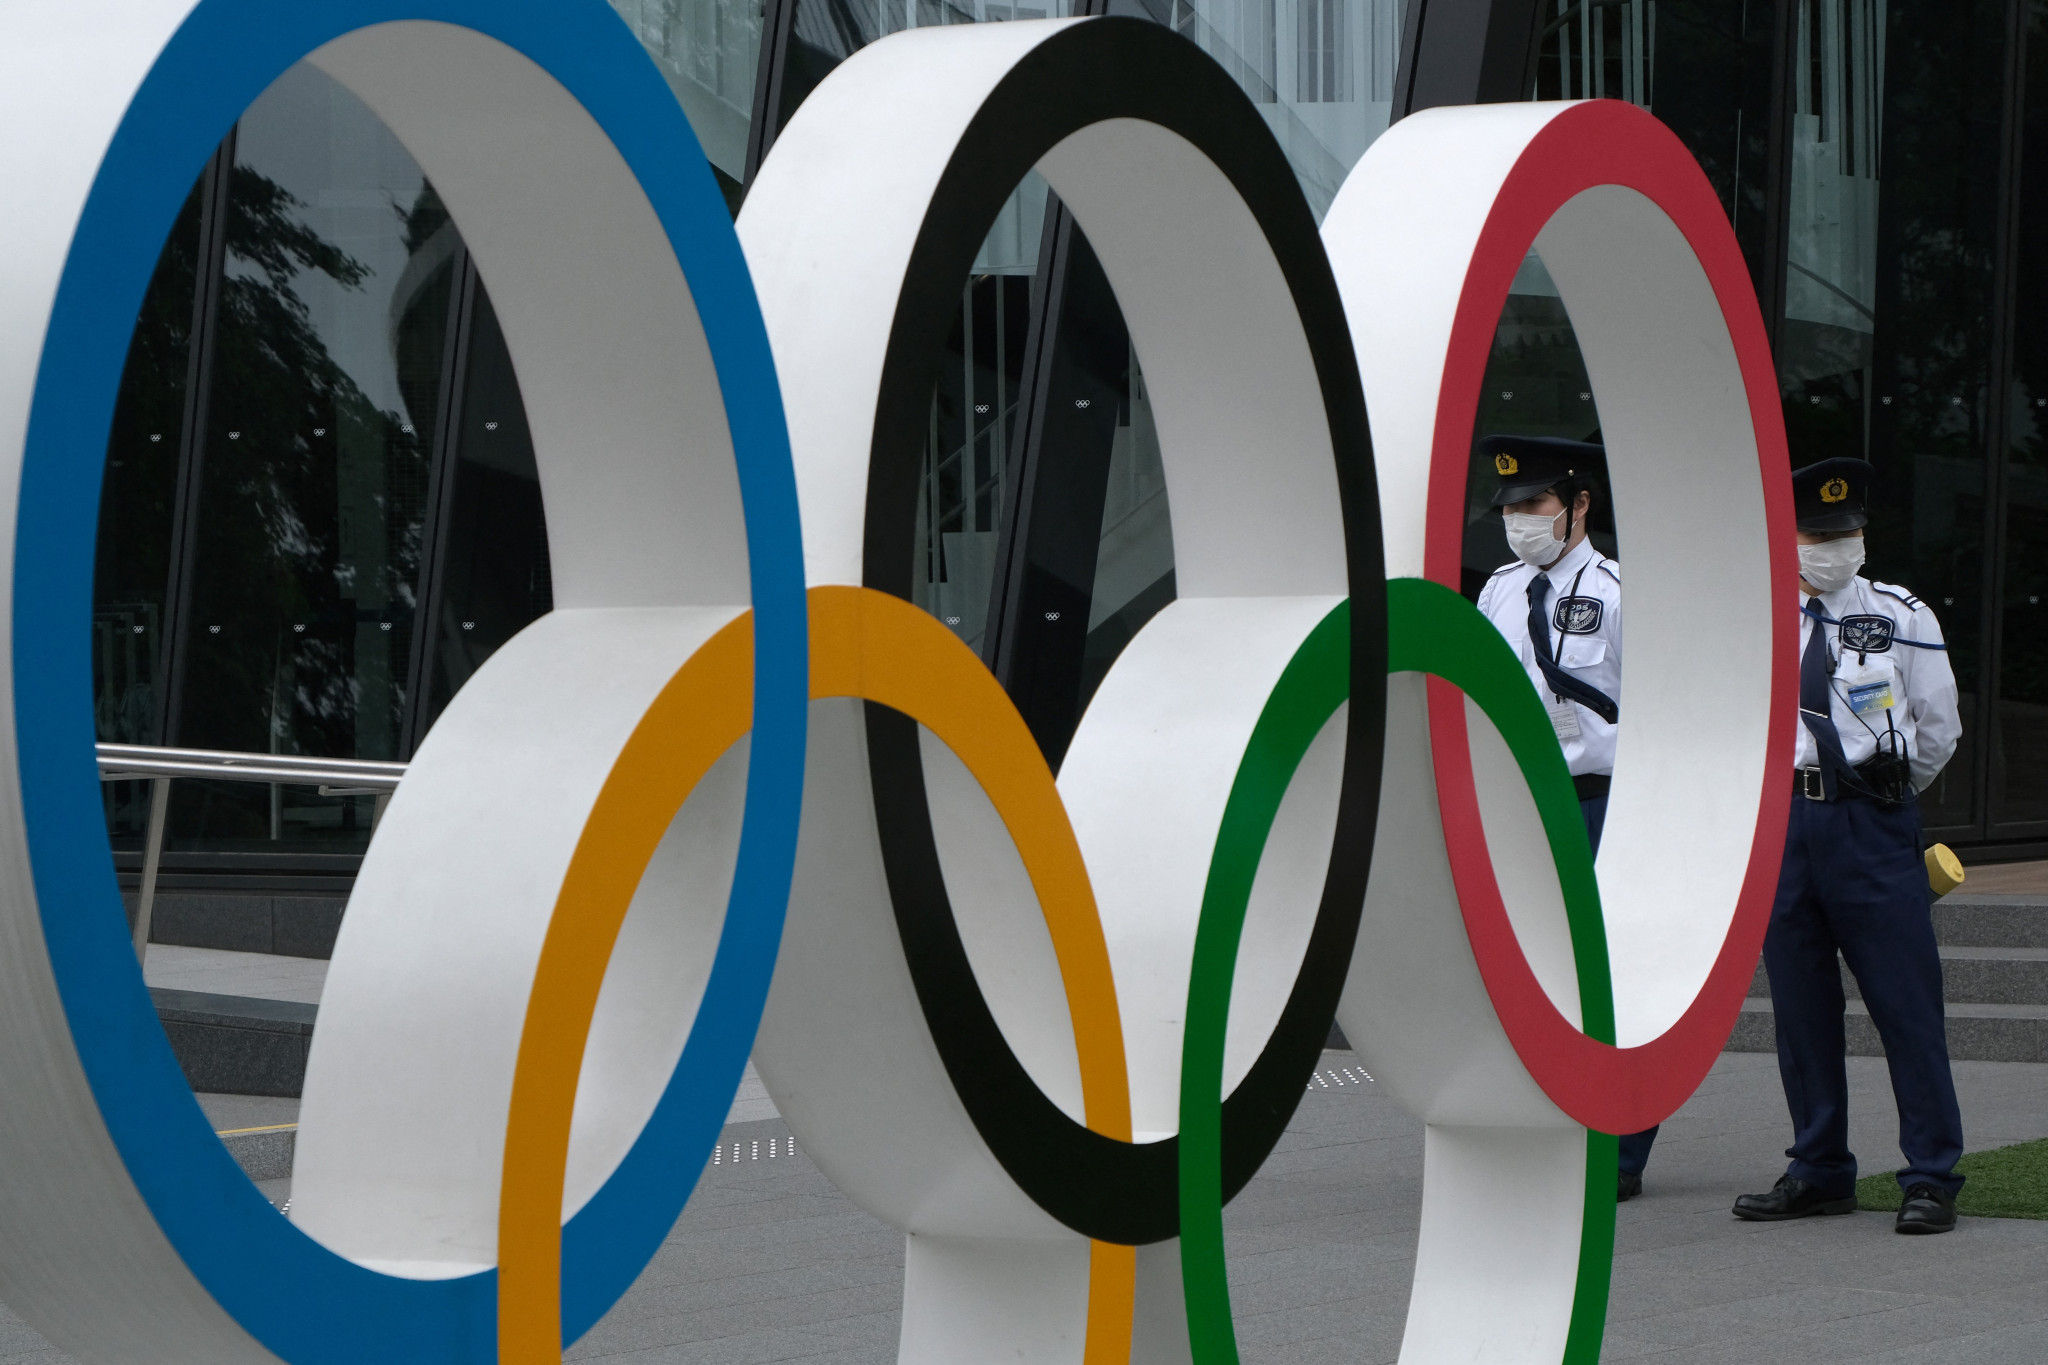 Waivers required for Tokyo 2020 have been a source of debate ©Getty Images